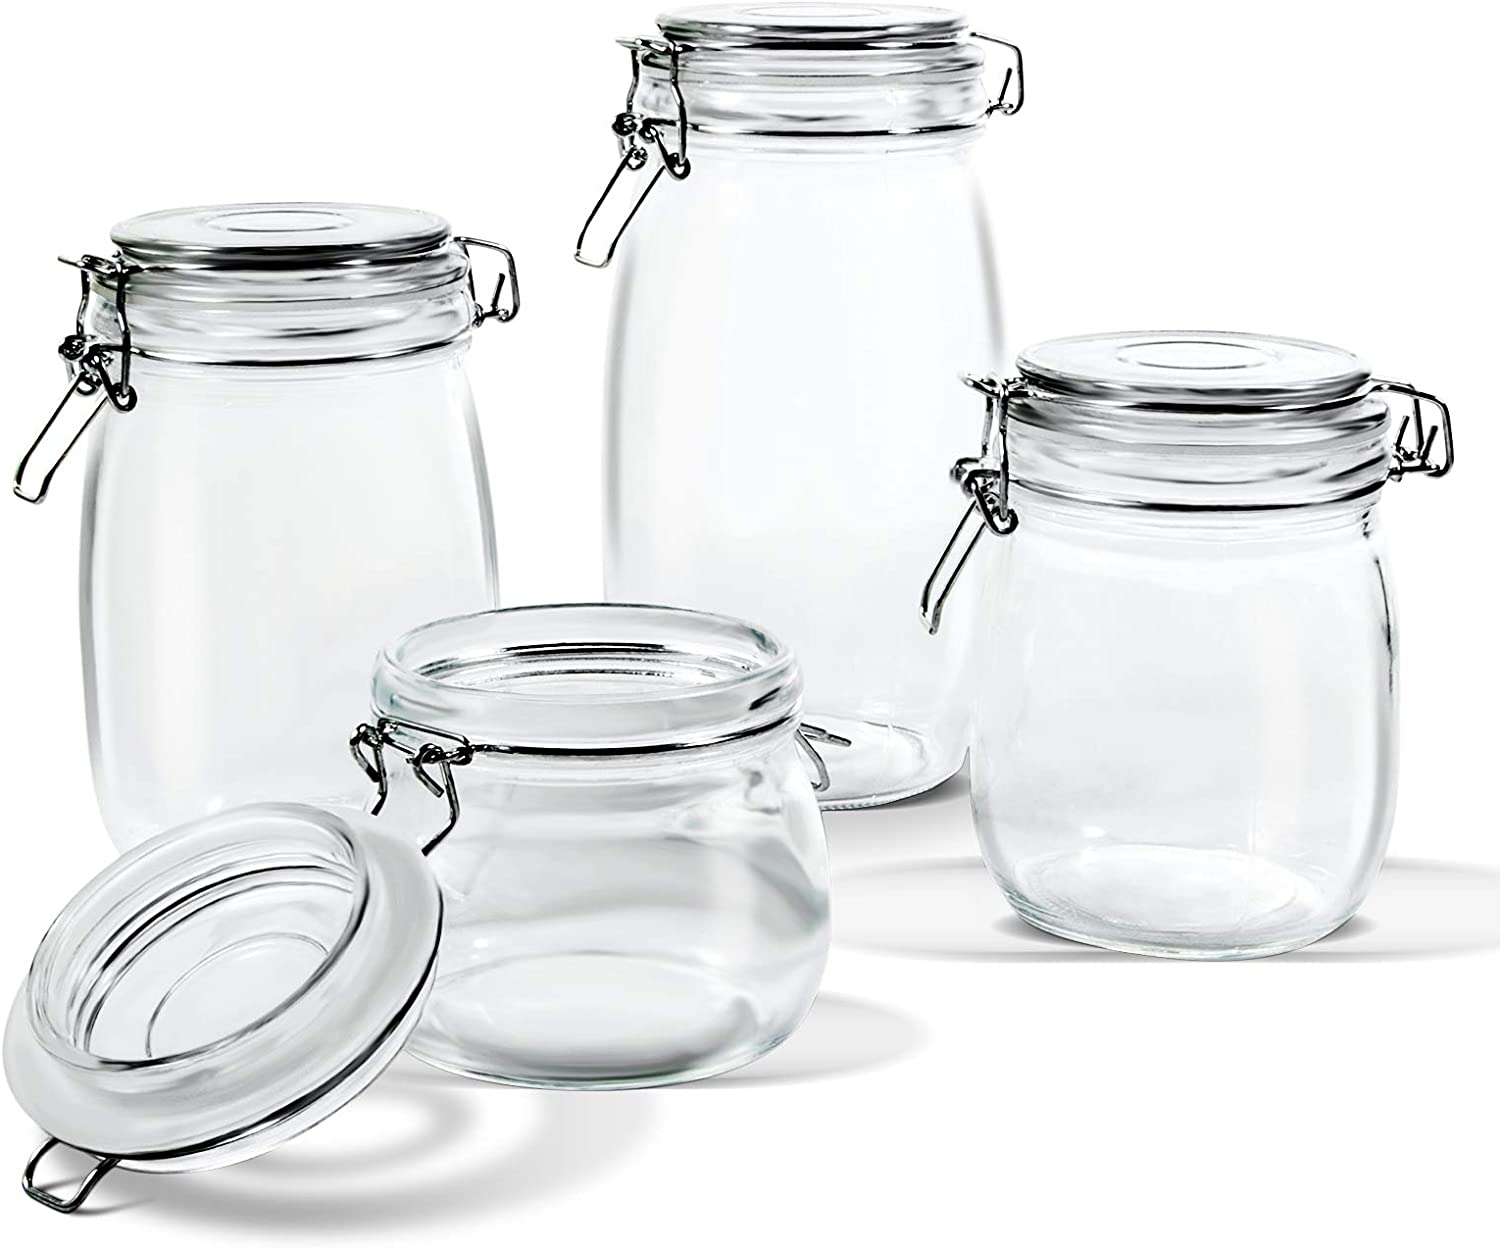 Amazon Com Glass Storage Jars With Airtight Hinged Lid Leak Proof Gasket Clear Canister For Oats Canning Cereal Pasta Sugar Coffee Nuts Spices Set Of 4 Food Preserve Container Jars Home Improvement